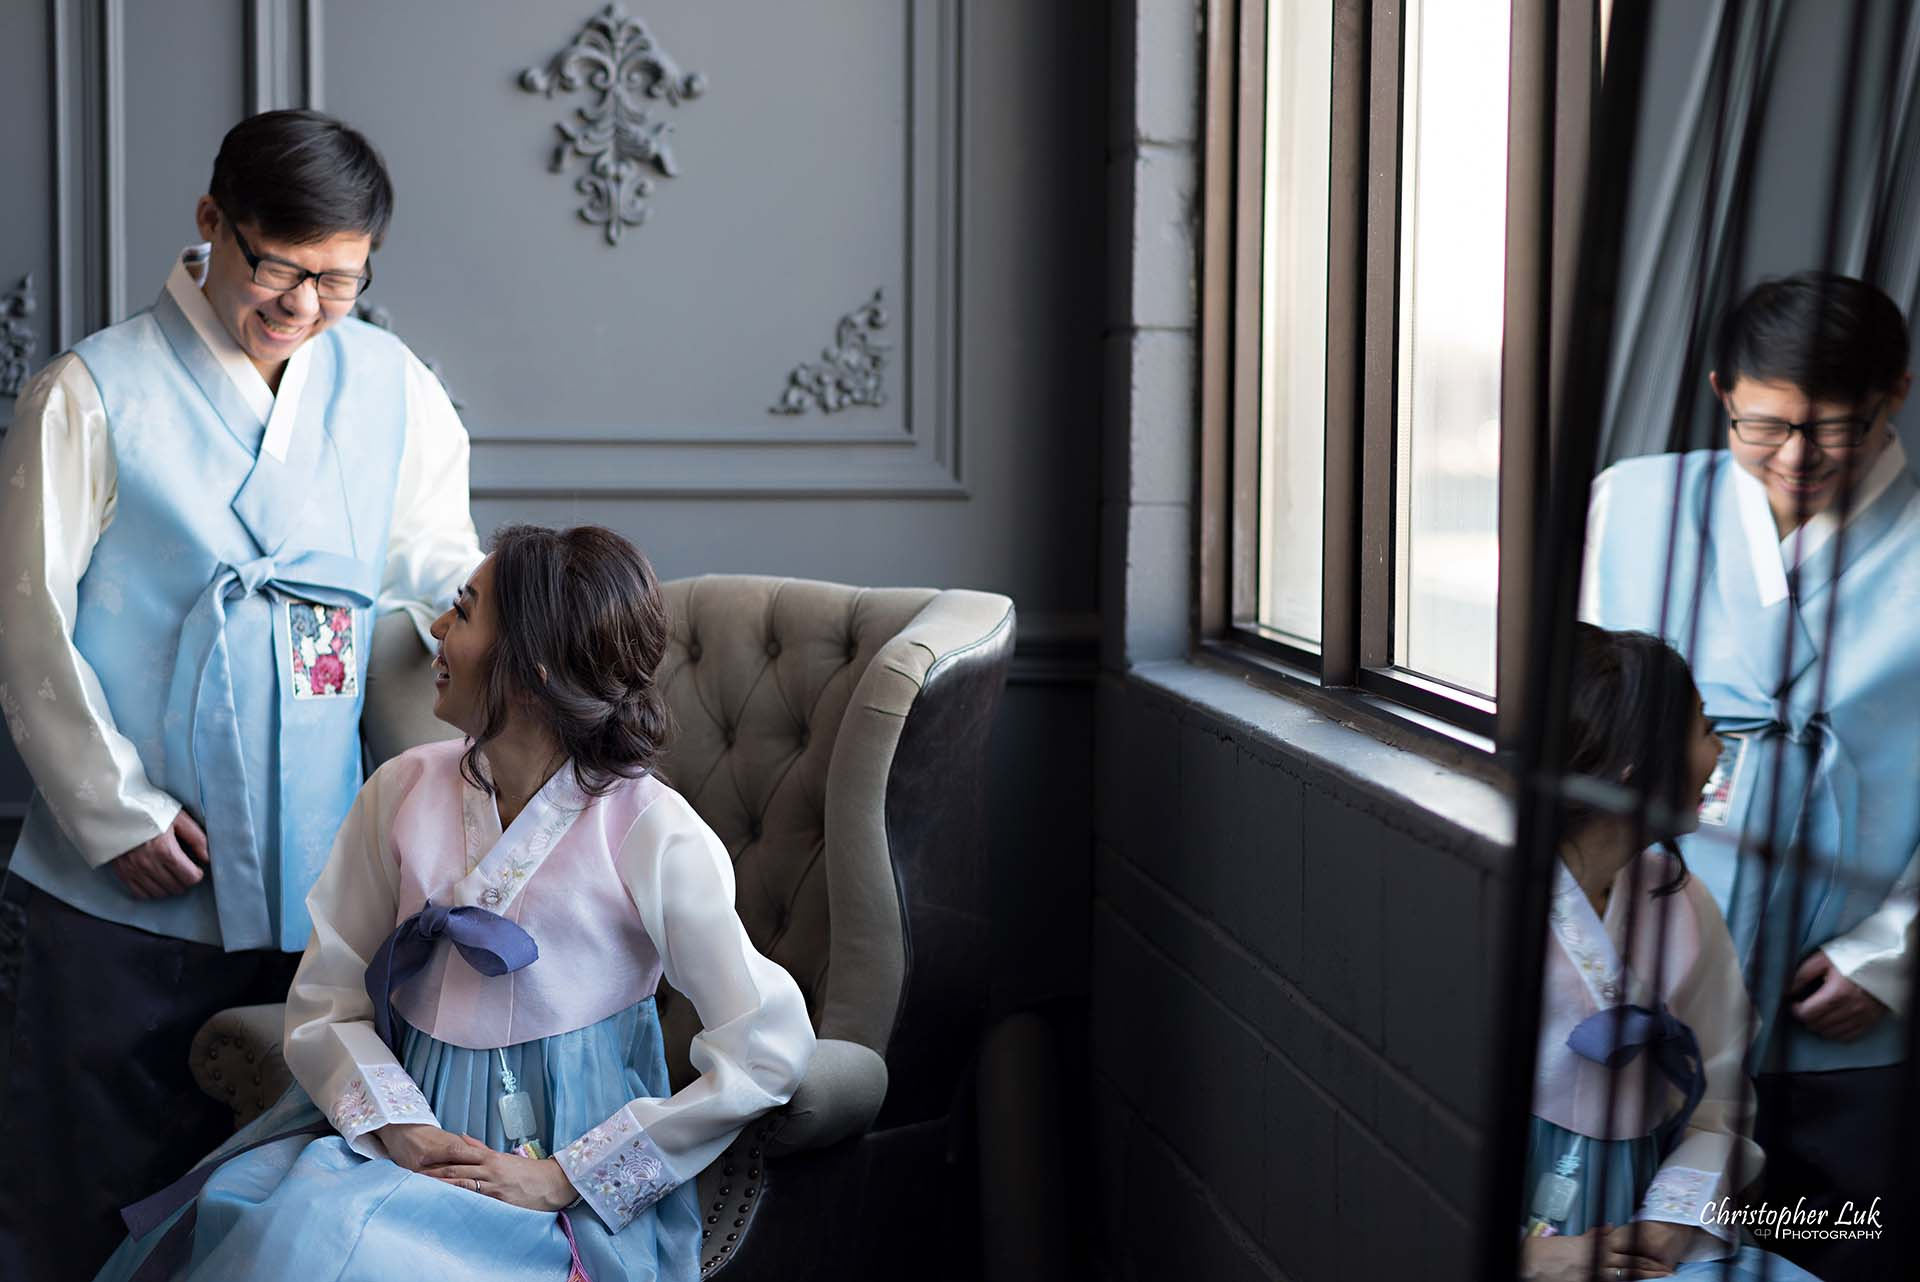 Christopher Luk Toronto Wedding Photographer - Mint Room Studios Bride Groom Natural Candid Photojournalistic Library Studio Korean Drama Hanbok Leather Wingback Chair Mirror Wide